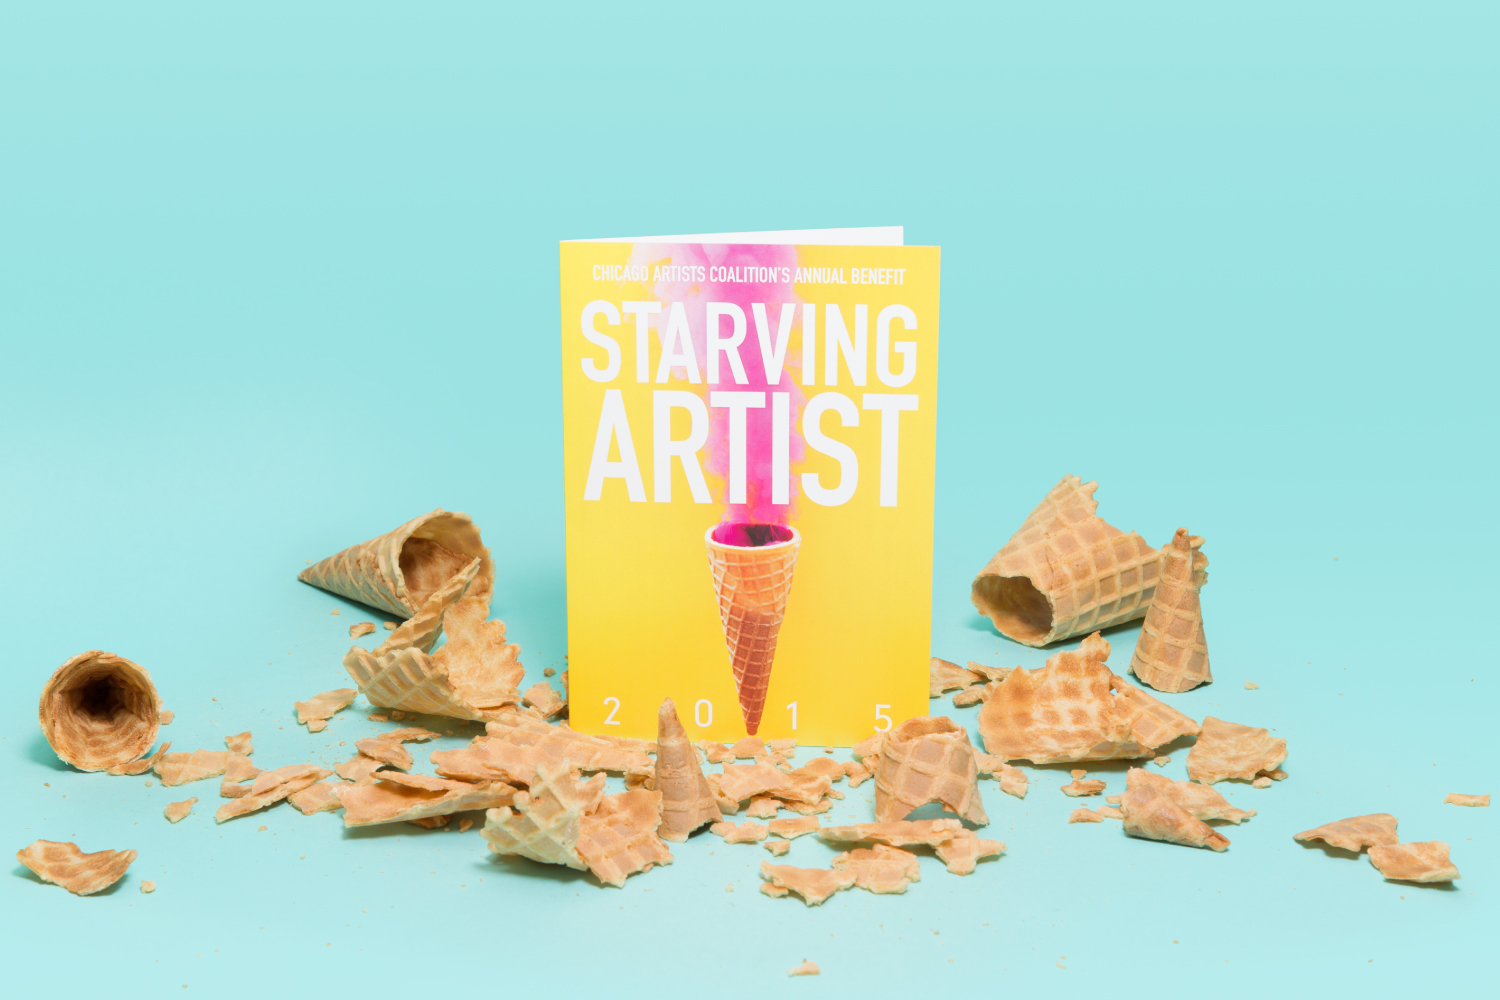 Chicago Artist Coalition Starving Artist branding and invite design.